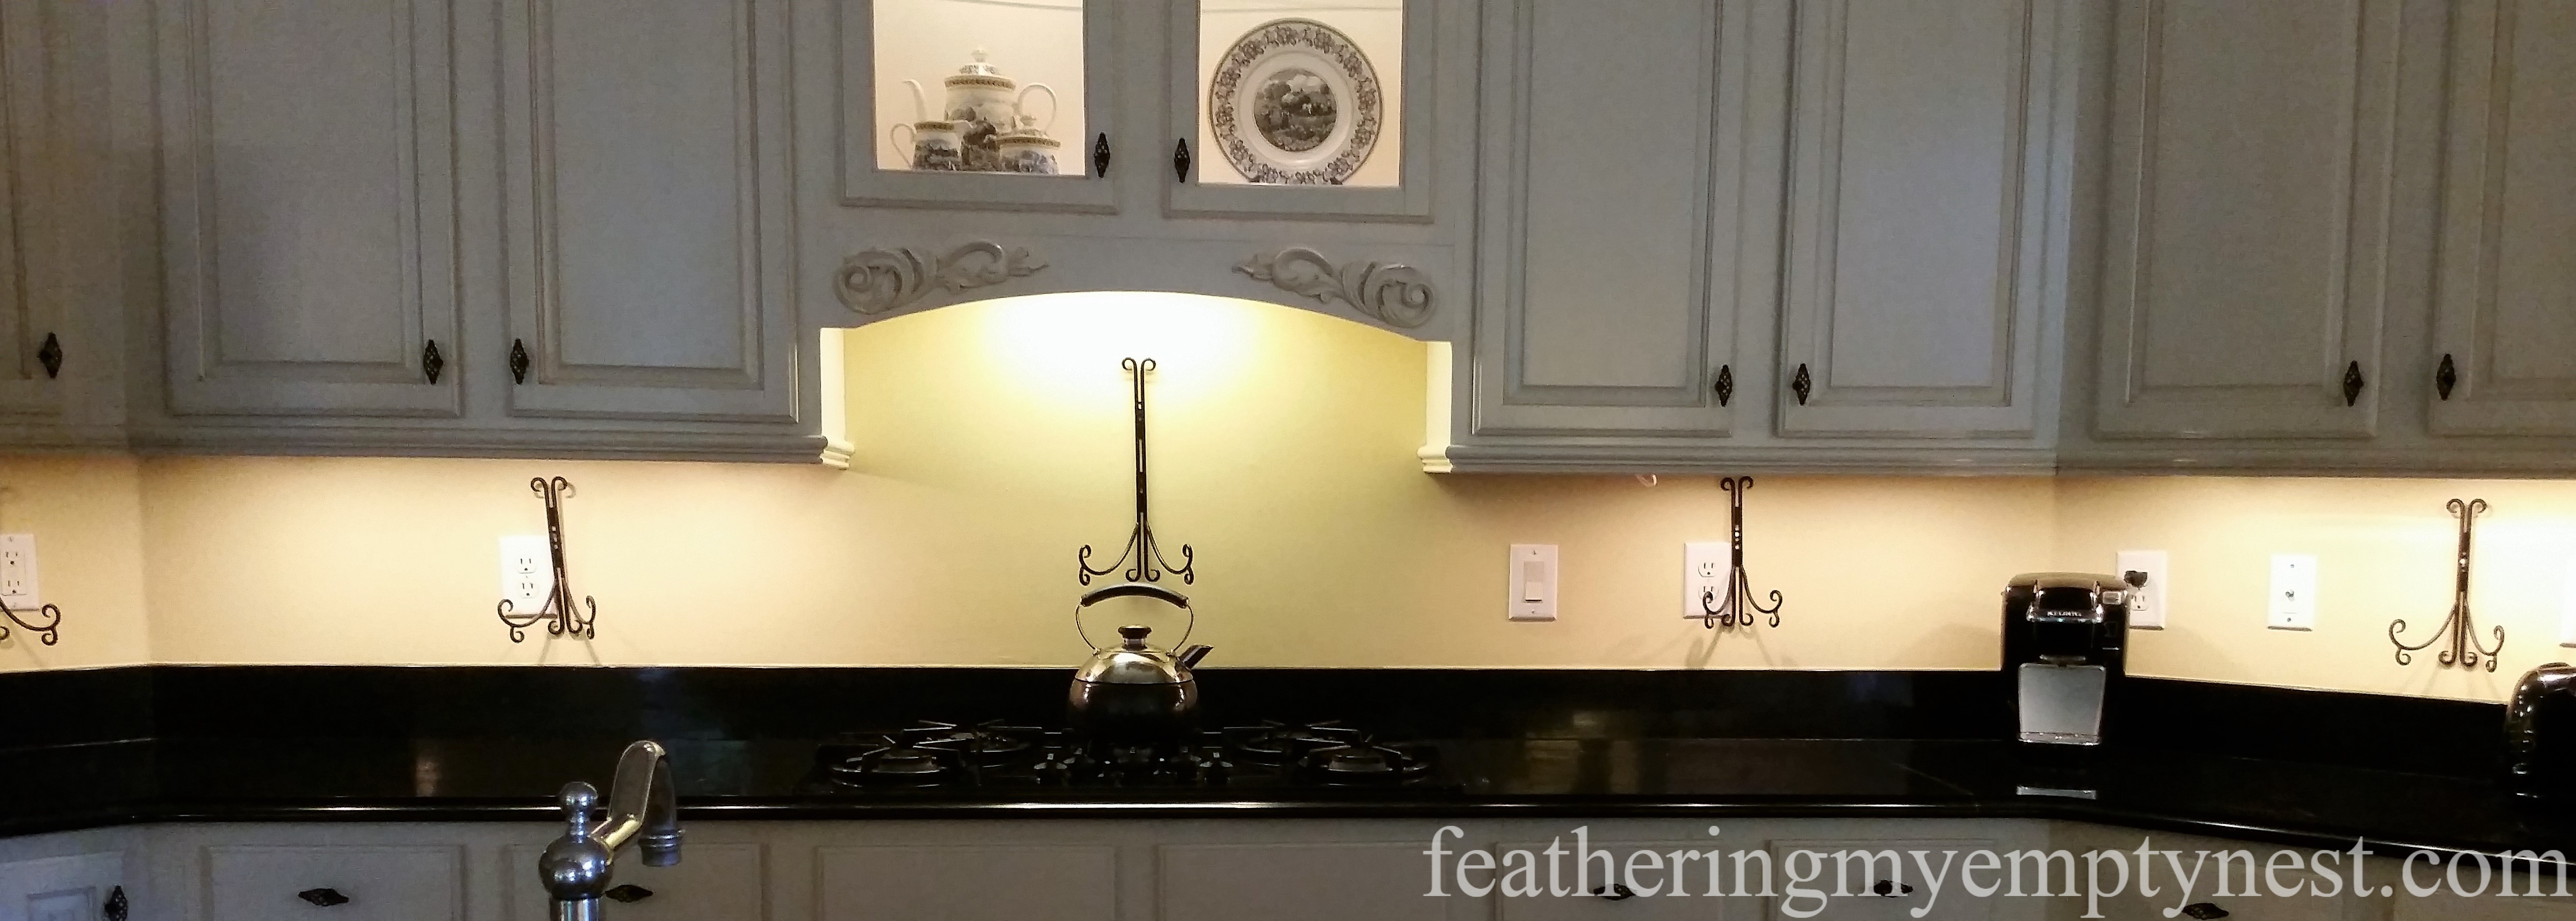 Plate Hanger Easels camouflage a plethora of outlets--Inexpensive Kitchen Updates And Camouflage